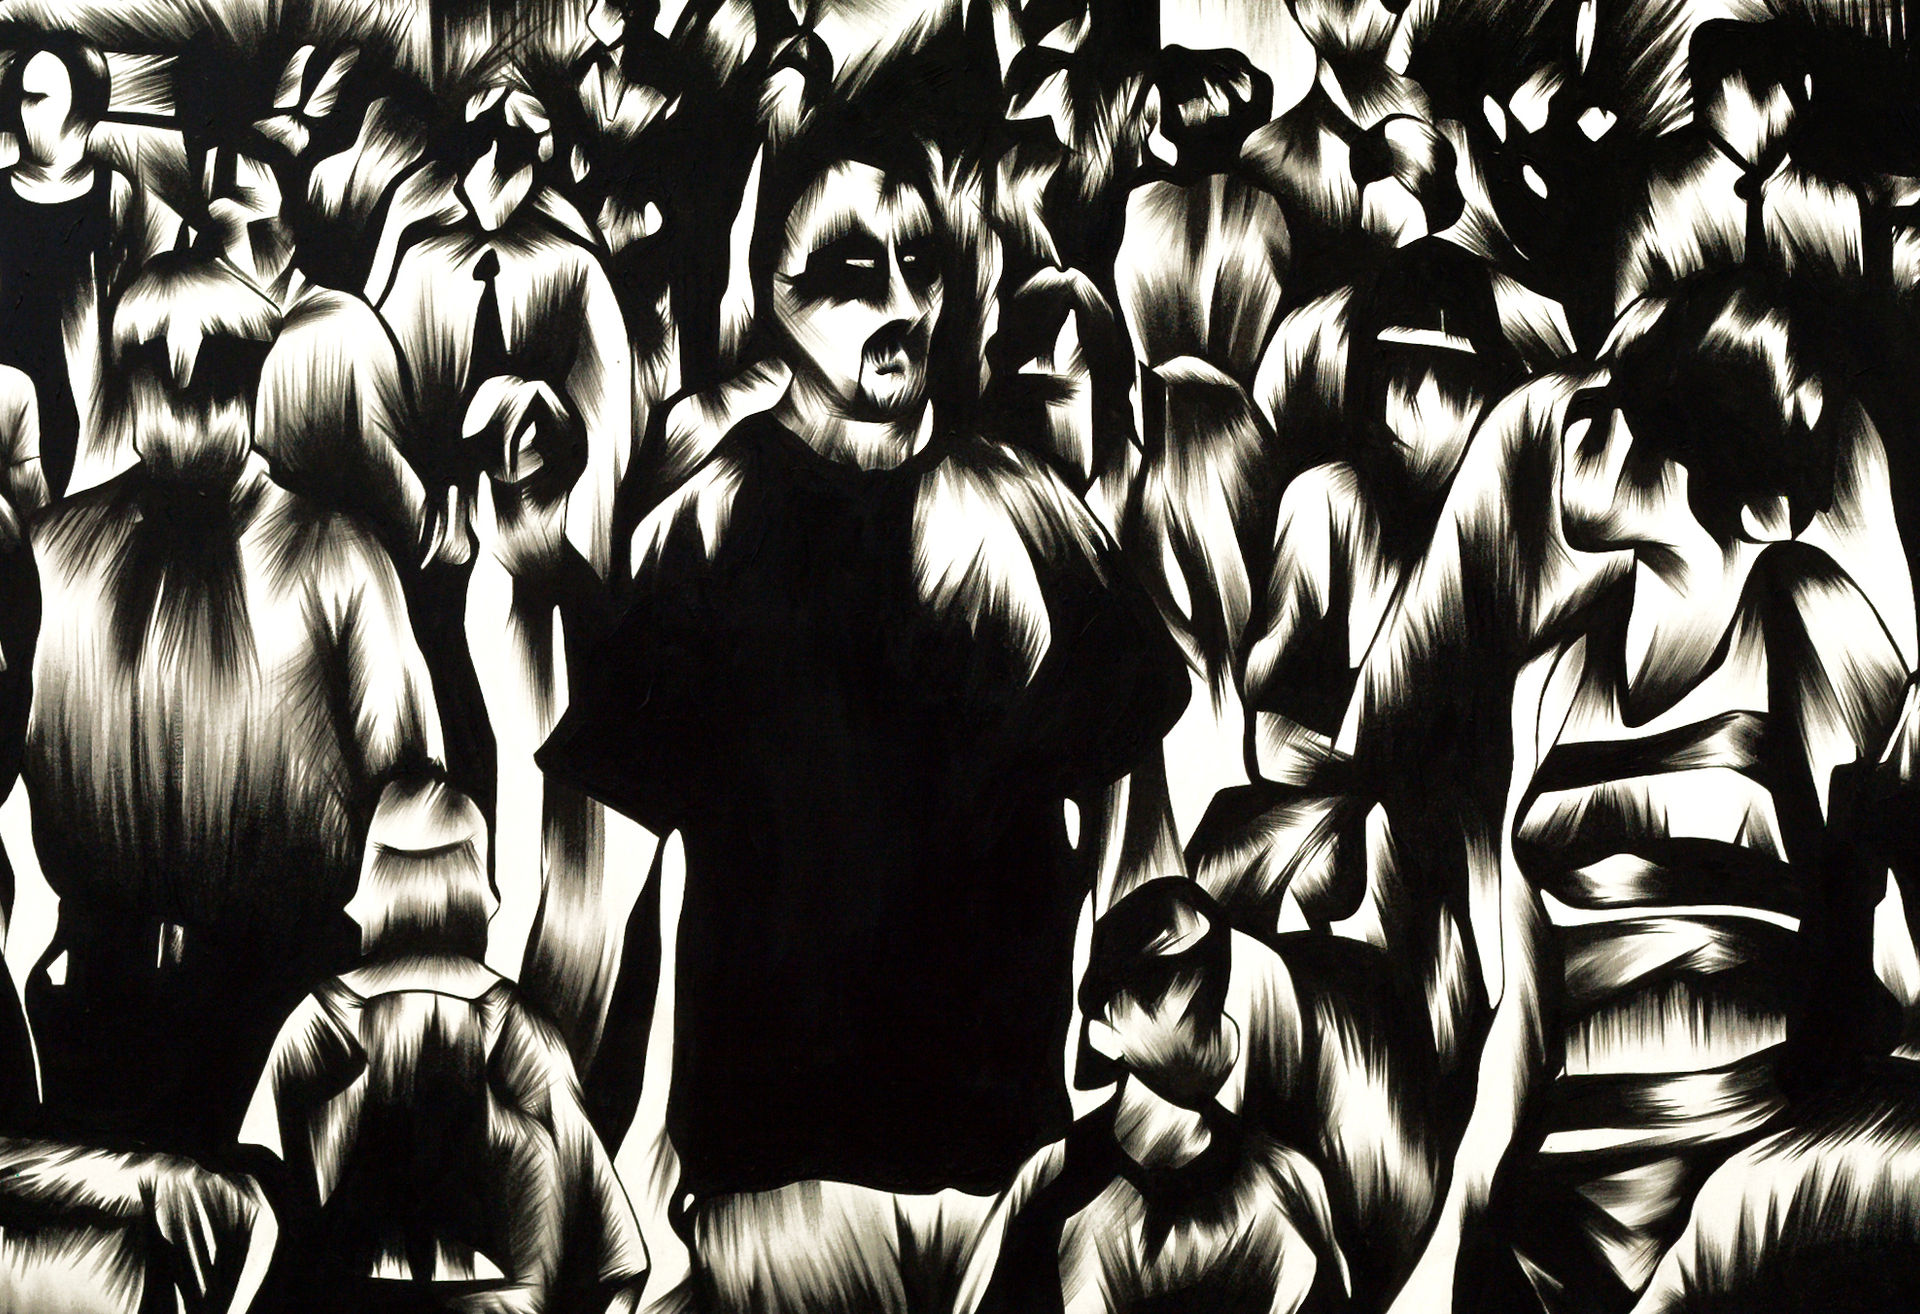 In The Crowd #1 - detail